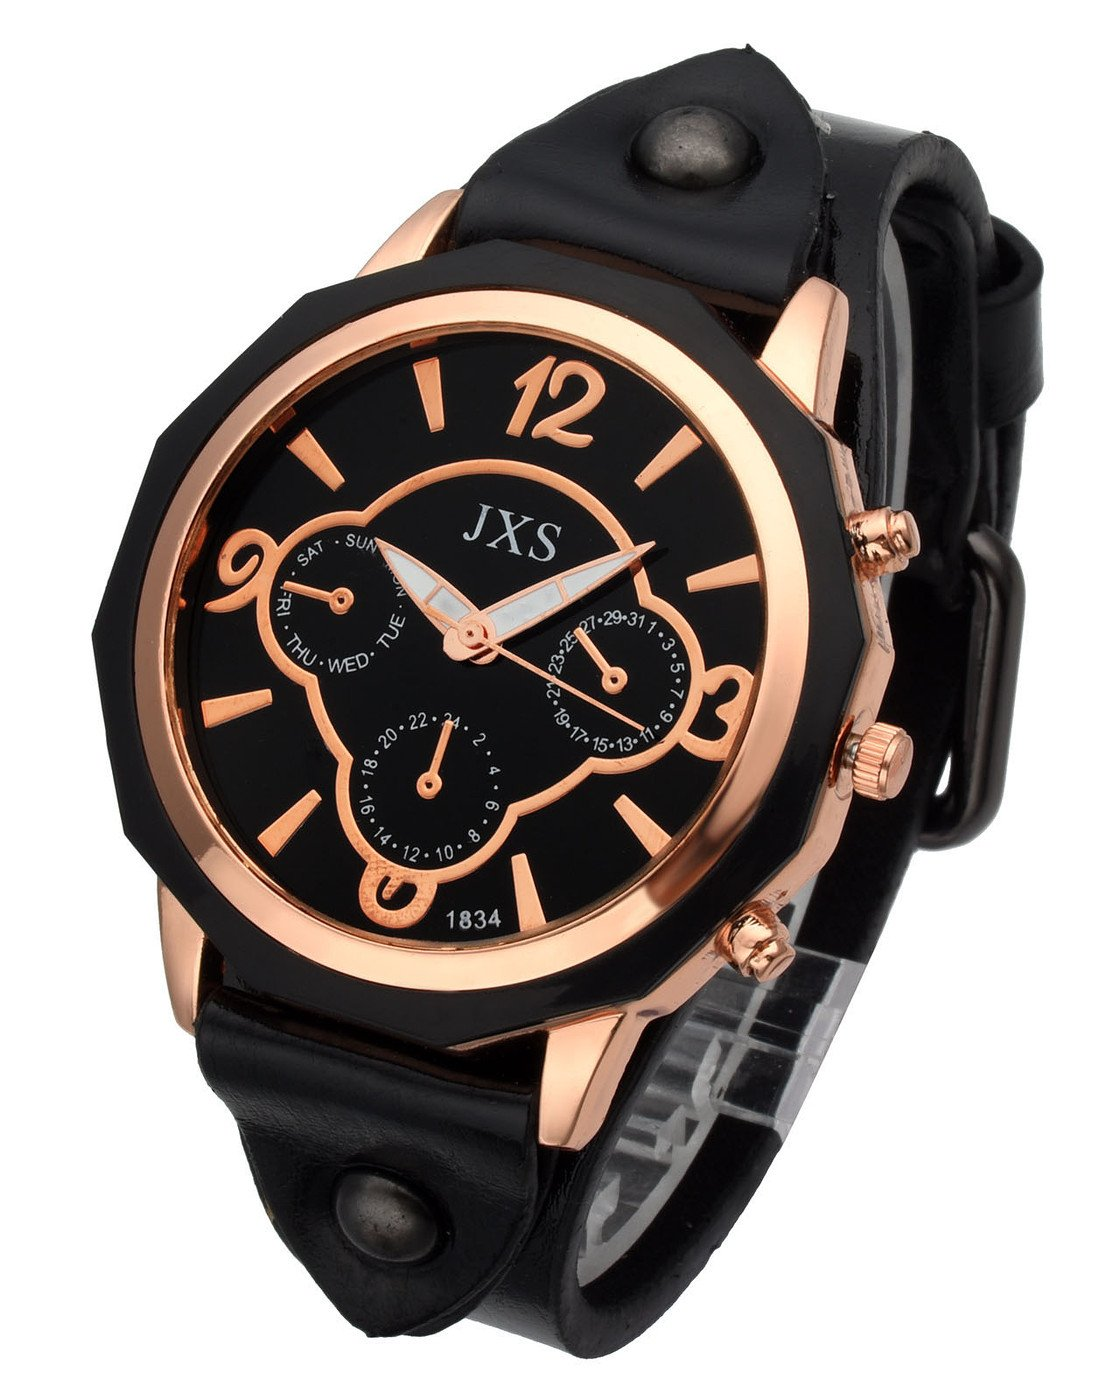 Top Plaza Womens Mens Fashion Rose Gold Tone Leather Analog Quartz Wrist Watch Arabic Numerals Big Face Casual Sport Watch - Black by Top Plaza (Image #1)